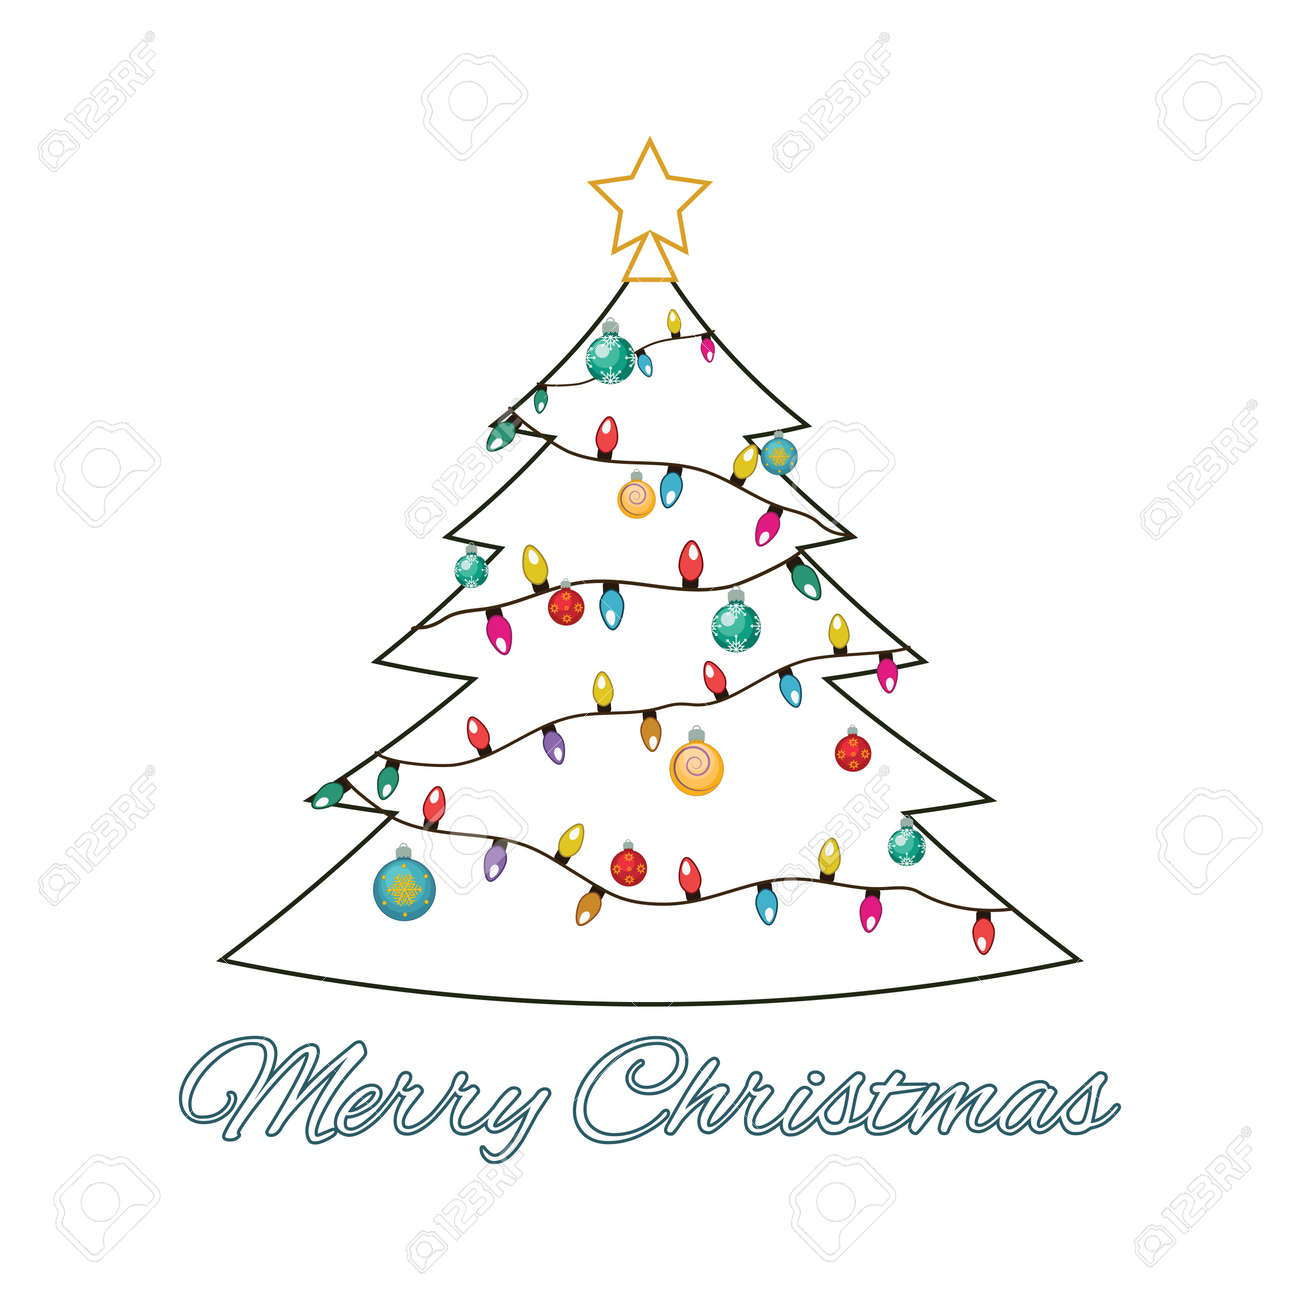 Illustration Of A Wireframe Christmas Tree With Ornaments Royalty ...